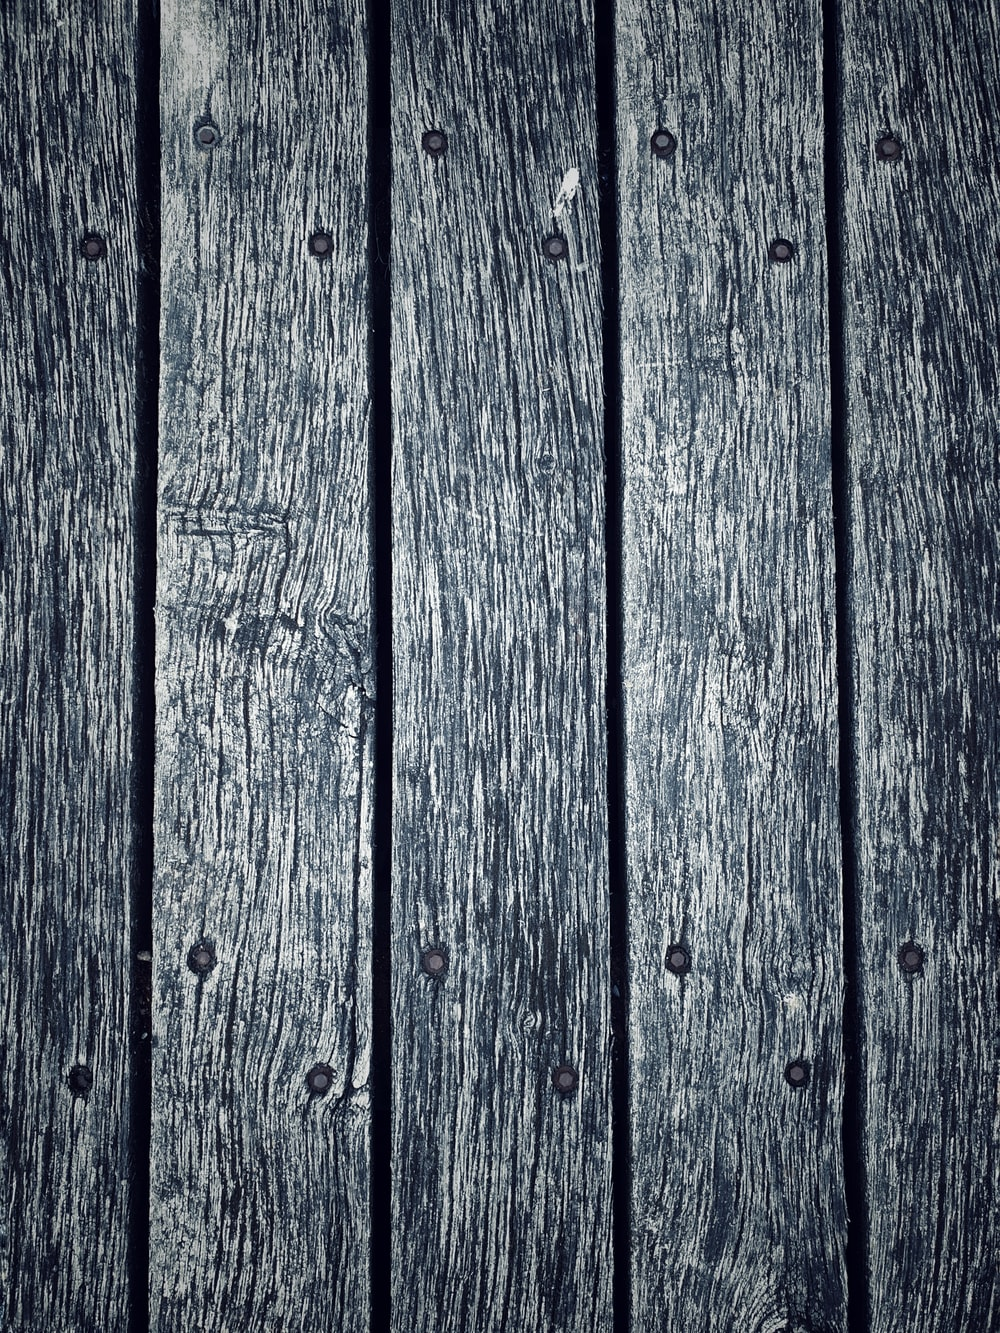 blue wooden plank in close up photography